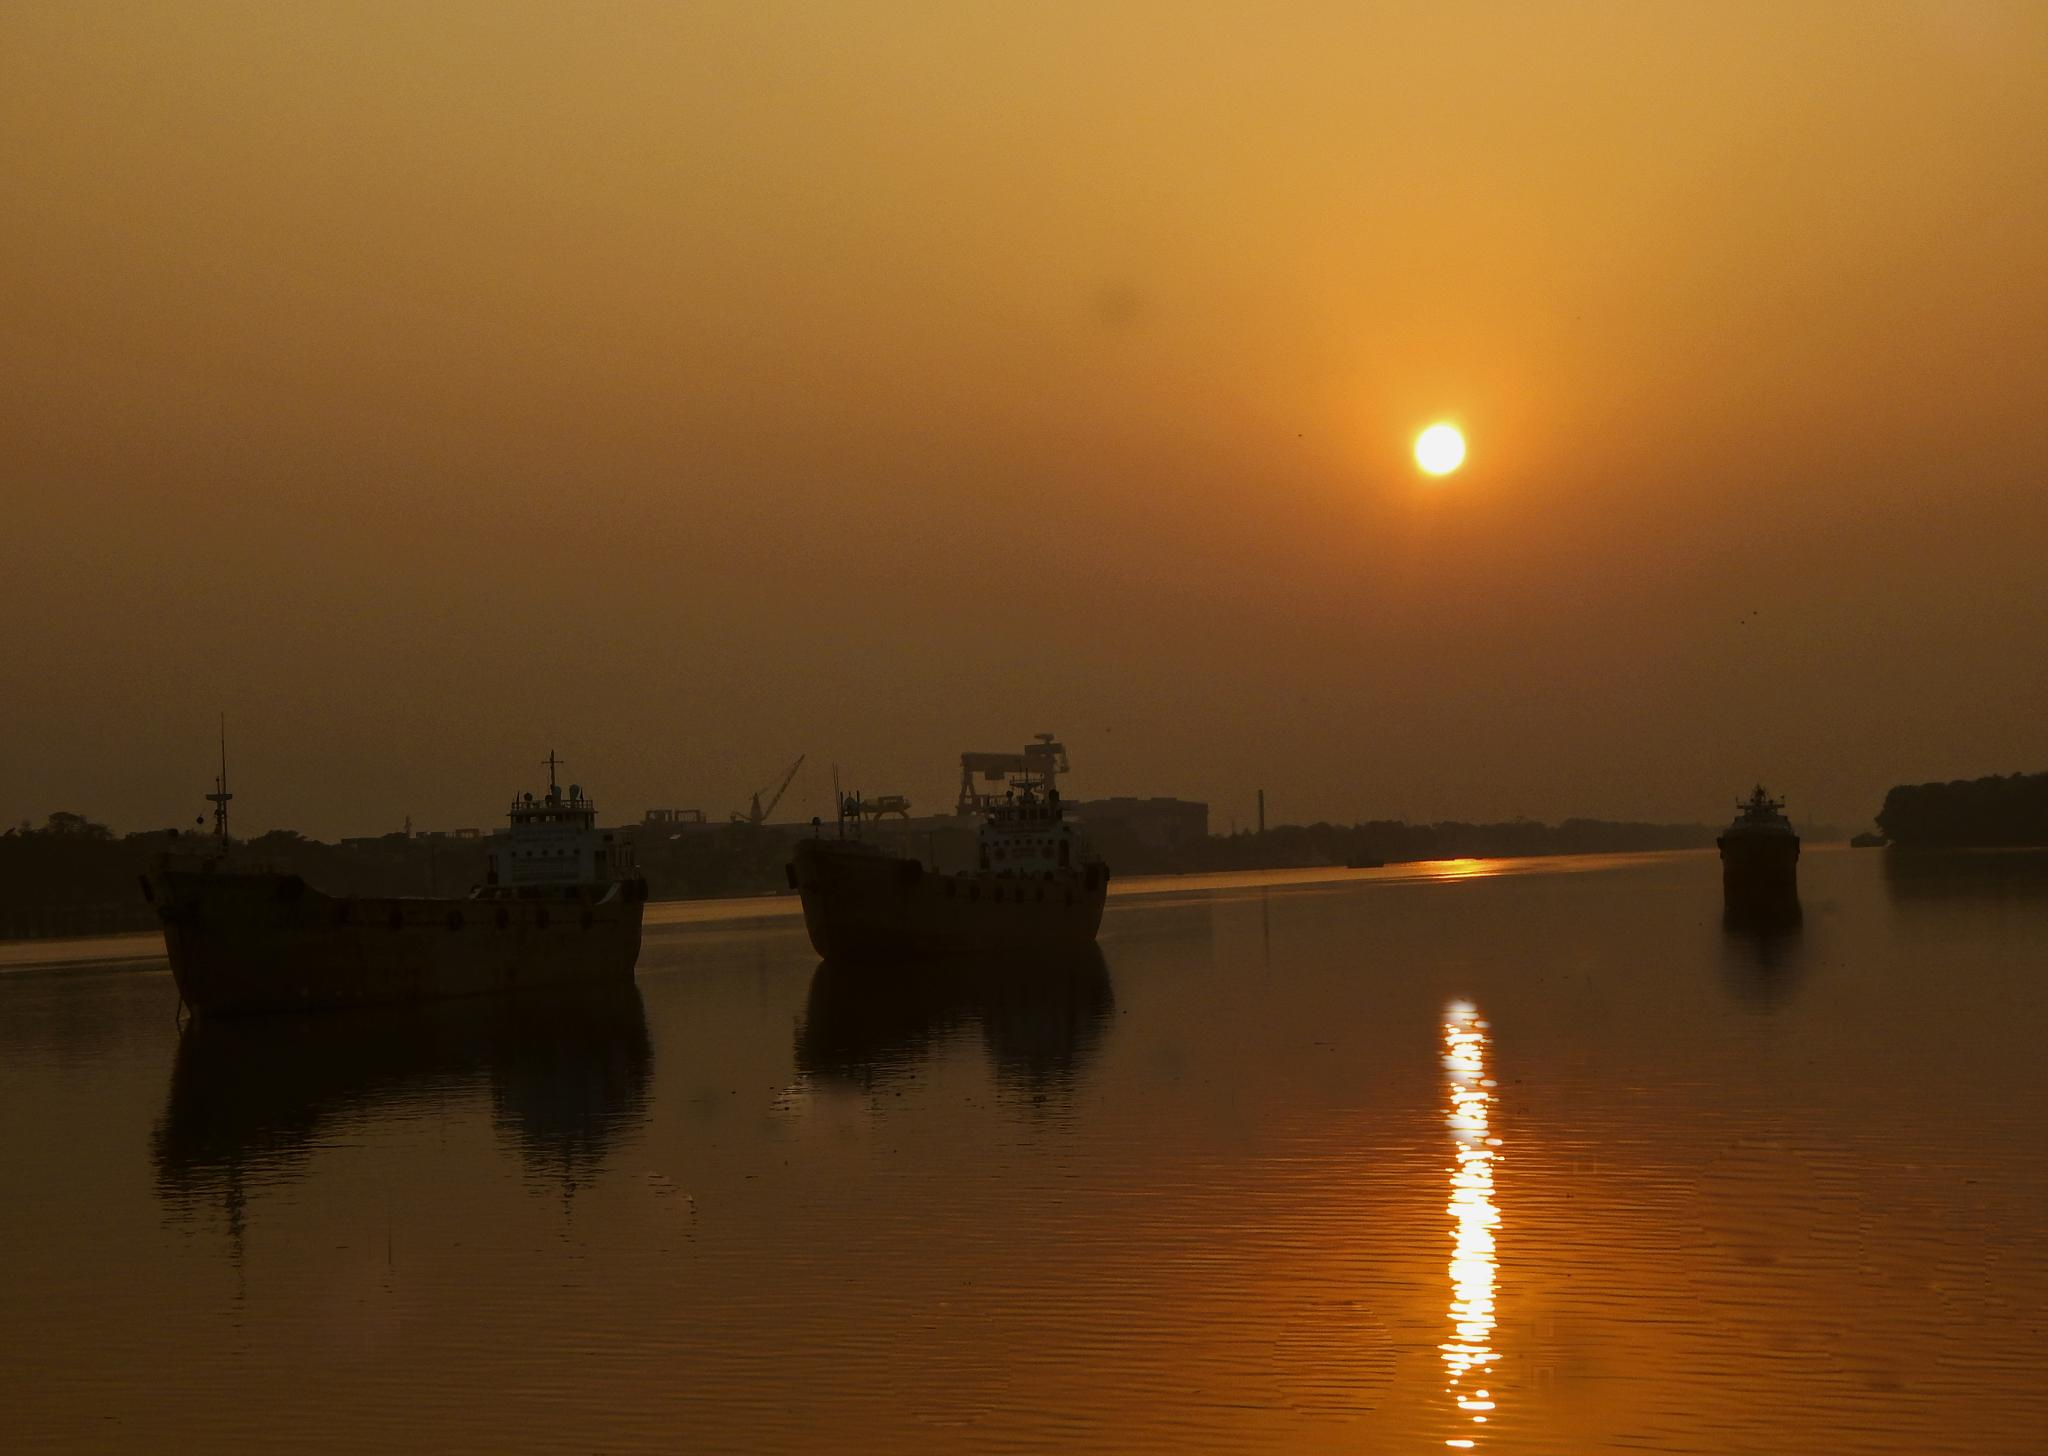 Sunset on the Ganges by Tanmoy Das